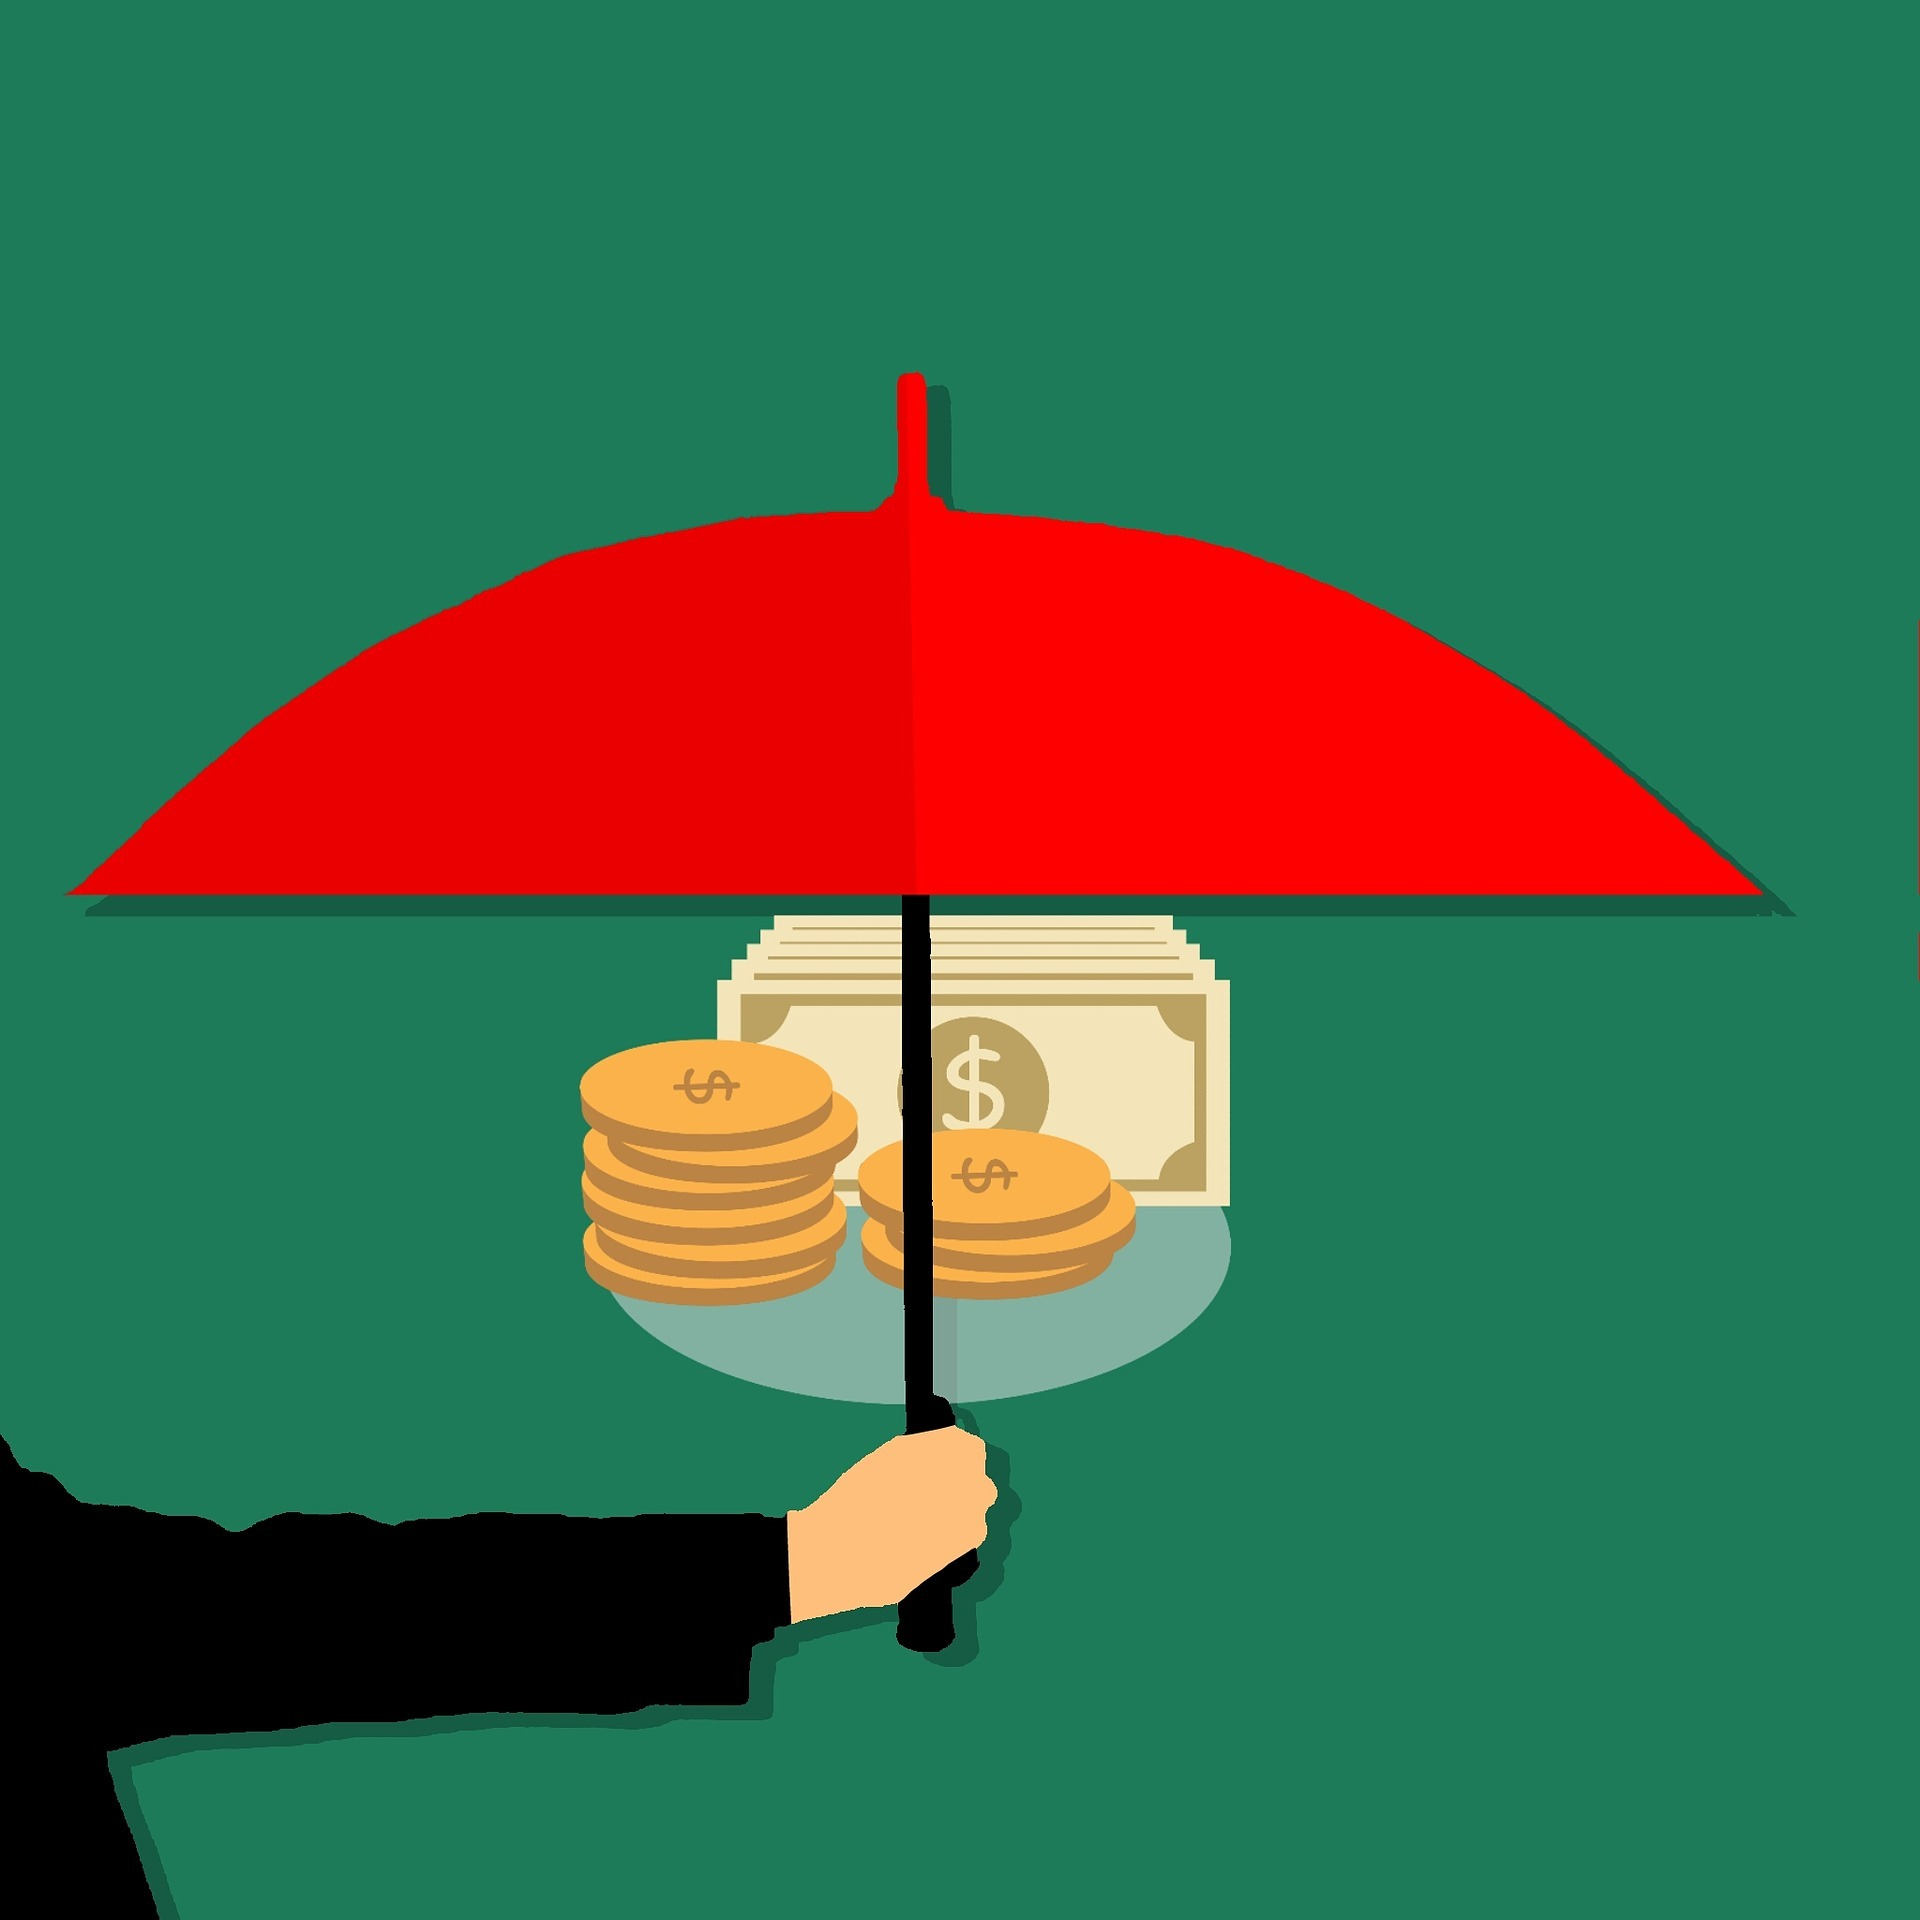 Red umbrella being held over a stack of money